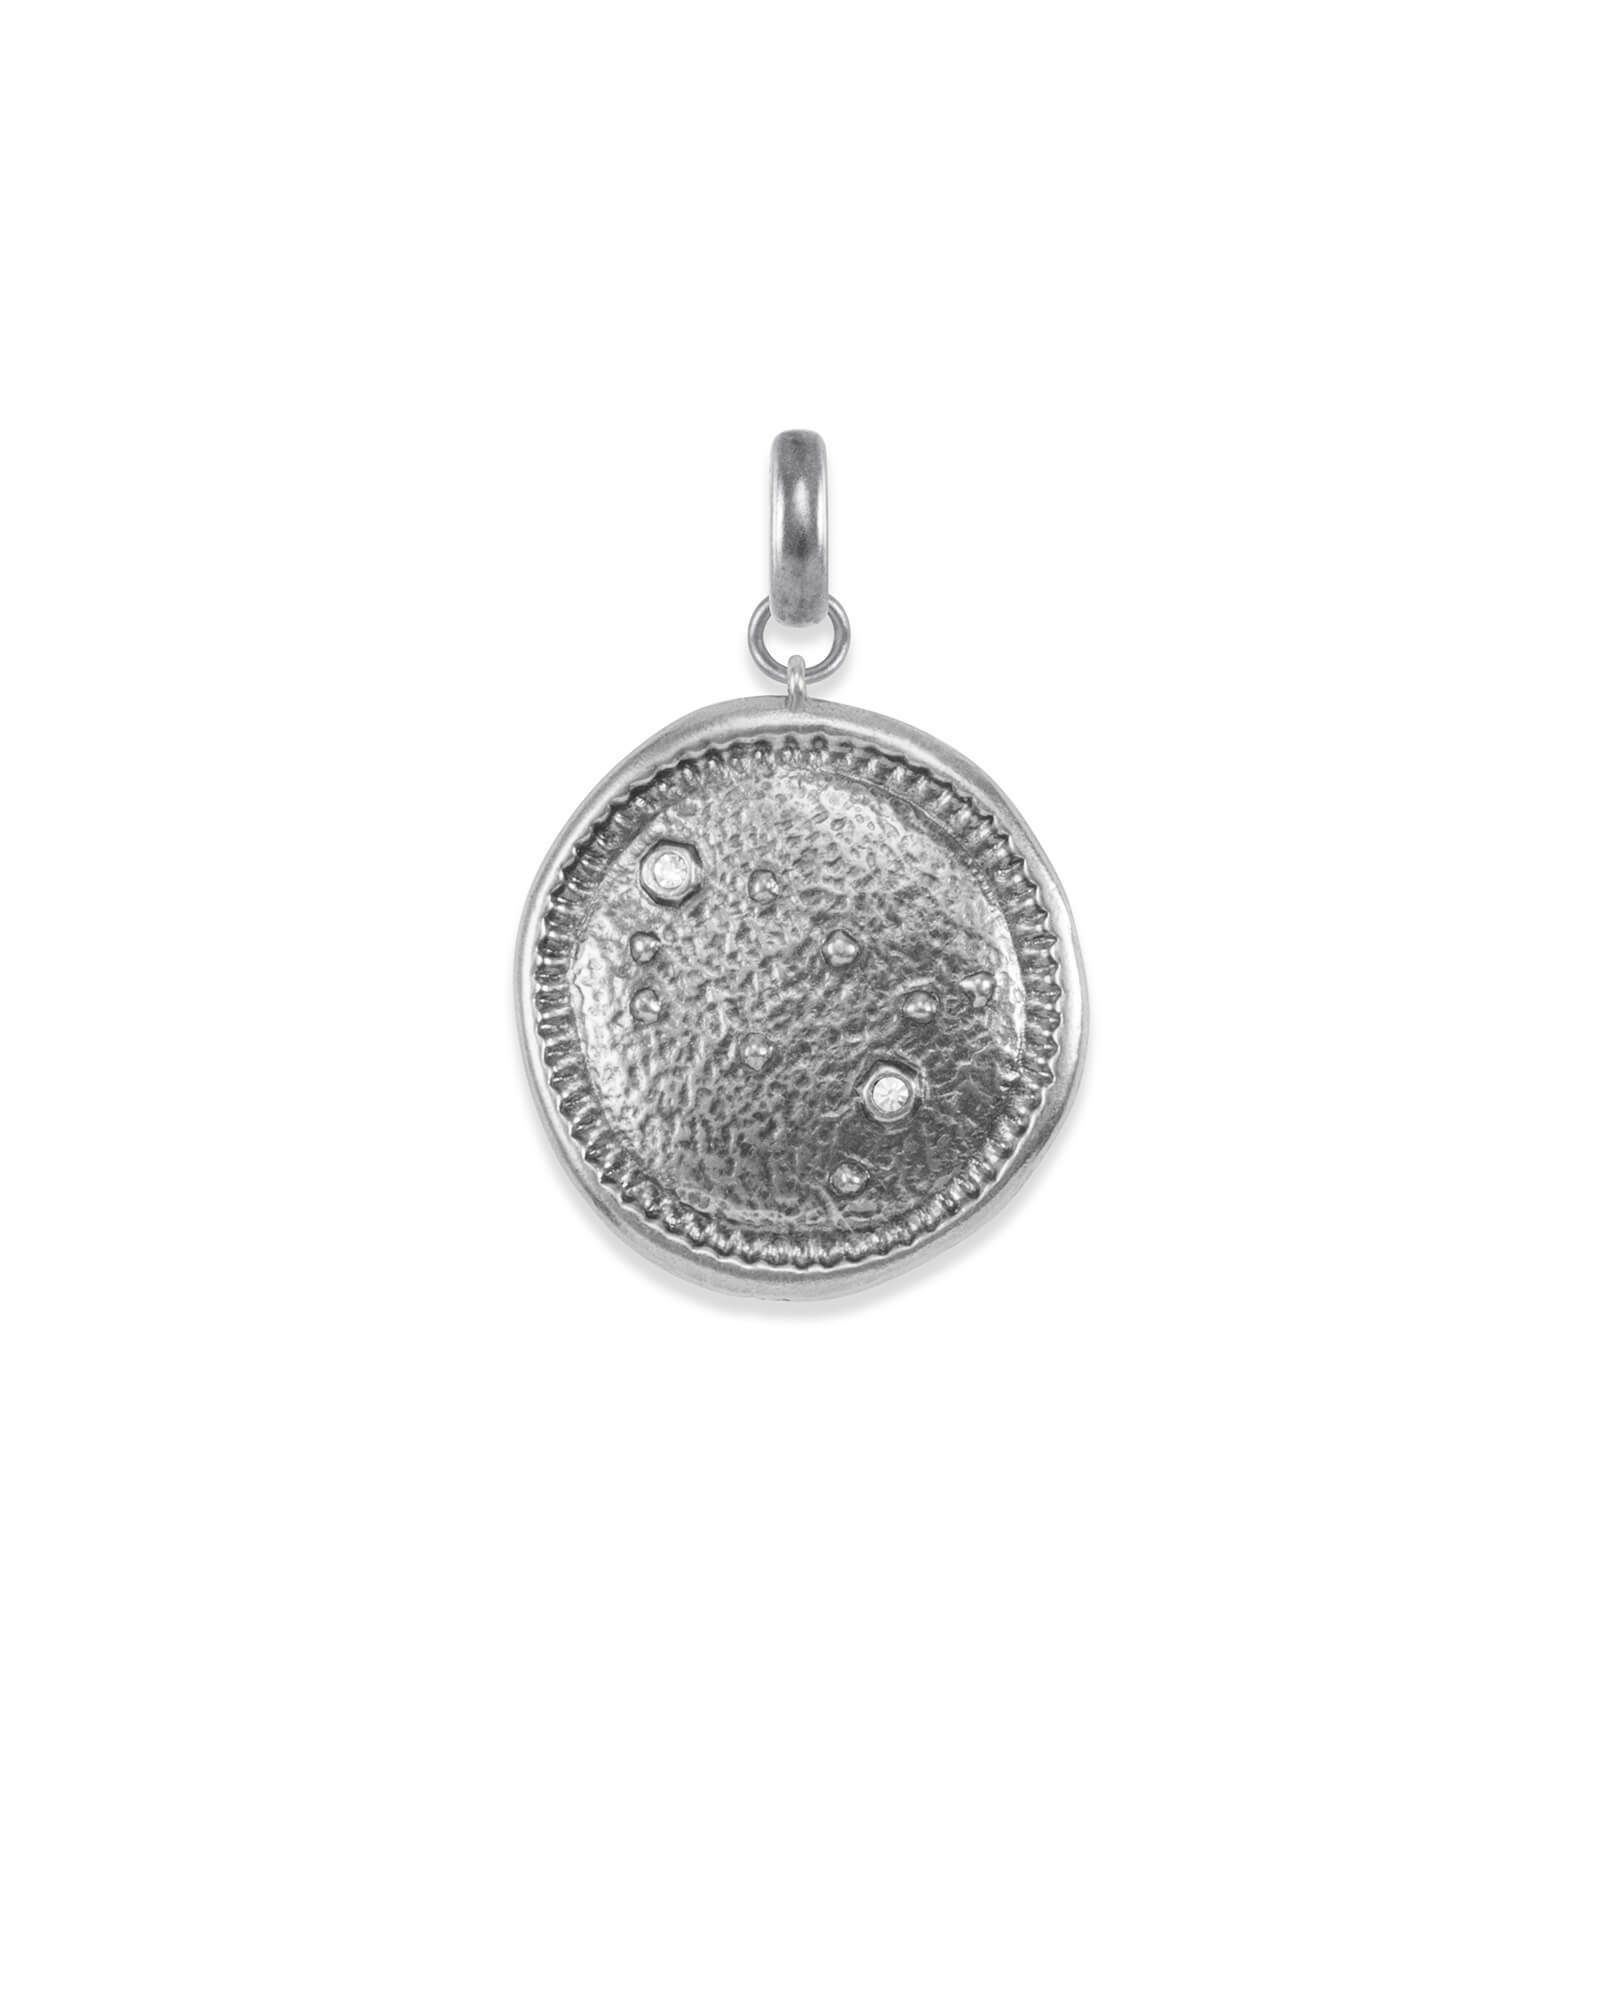 Gemini Coin Charm in Vintage Silver